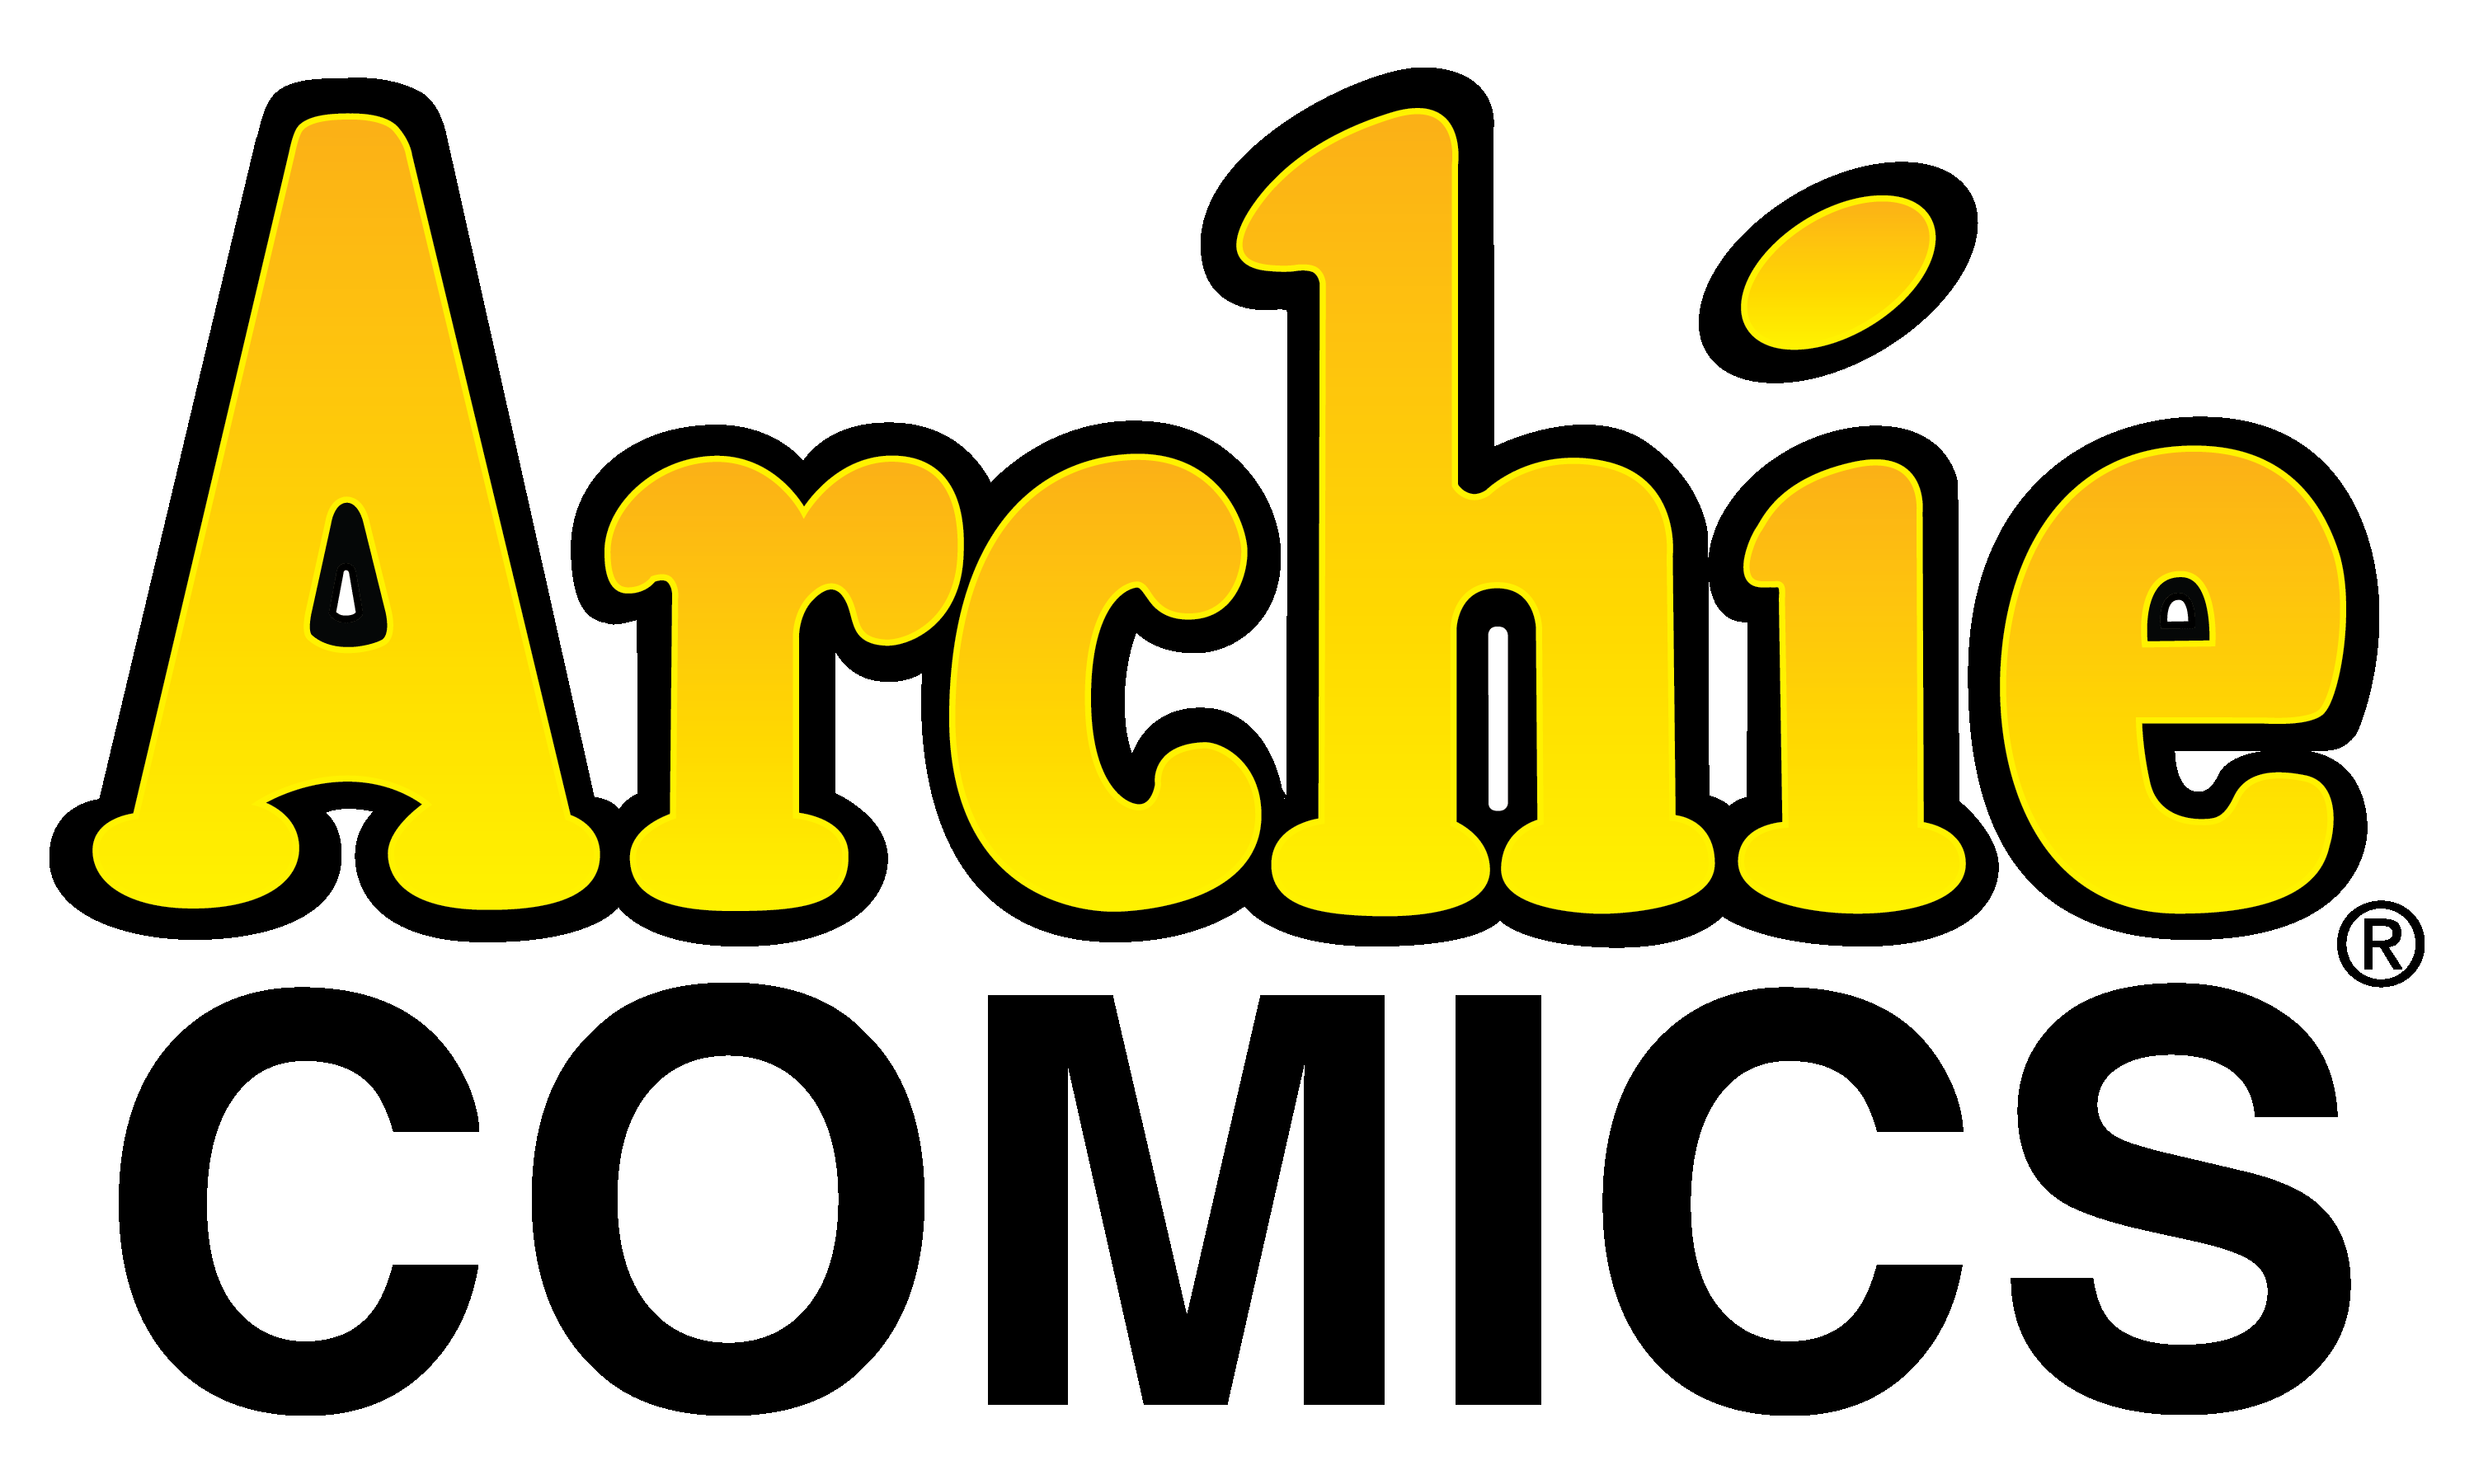 archie_logo.png